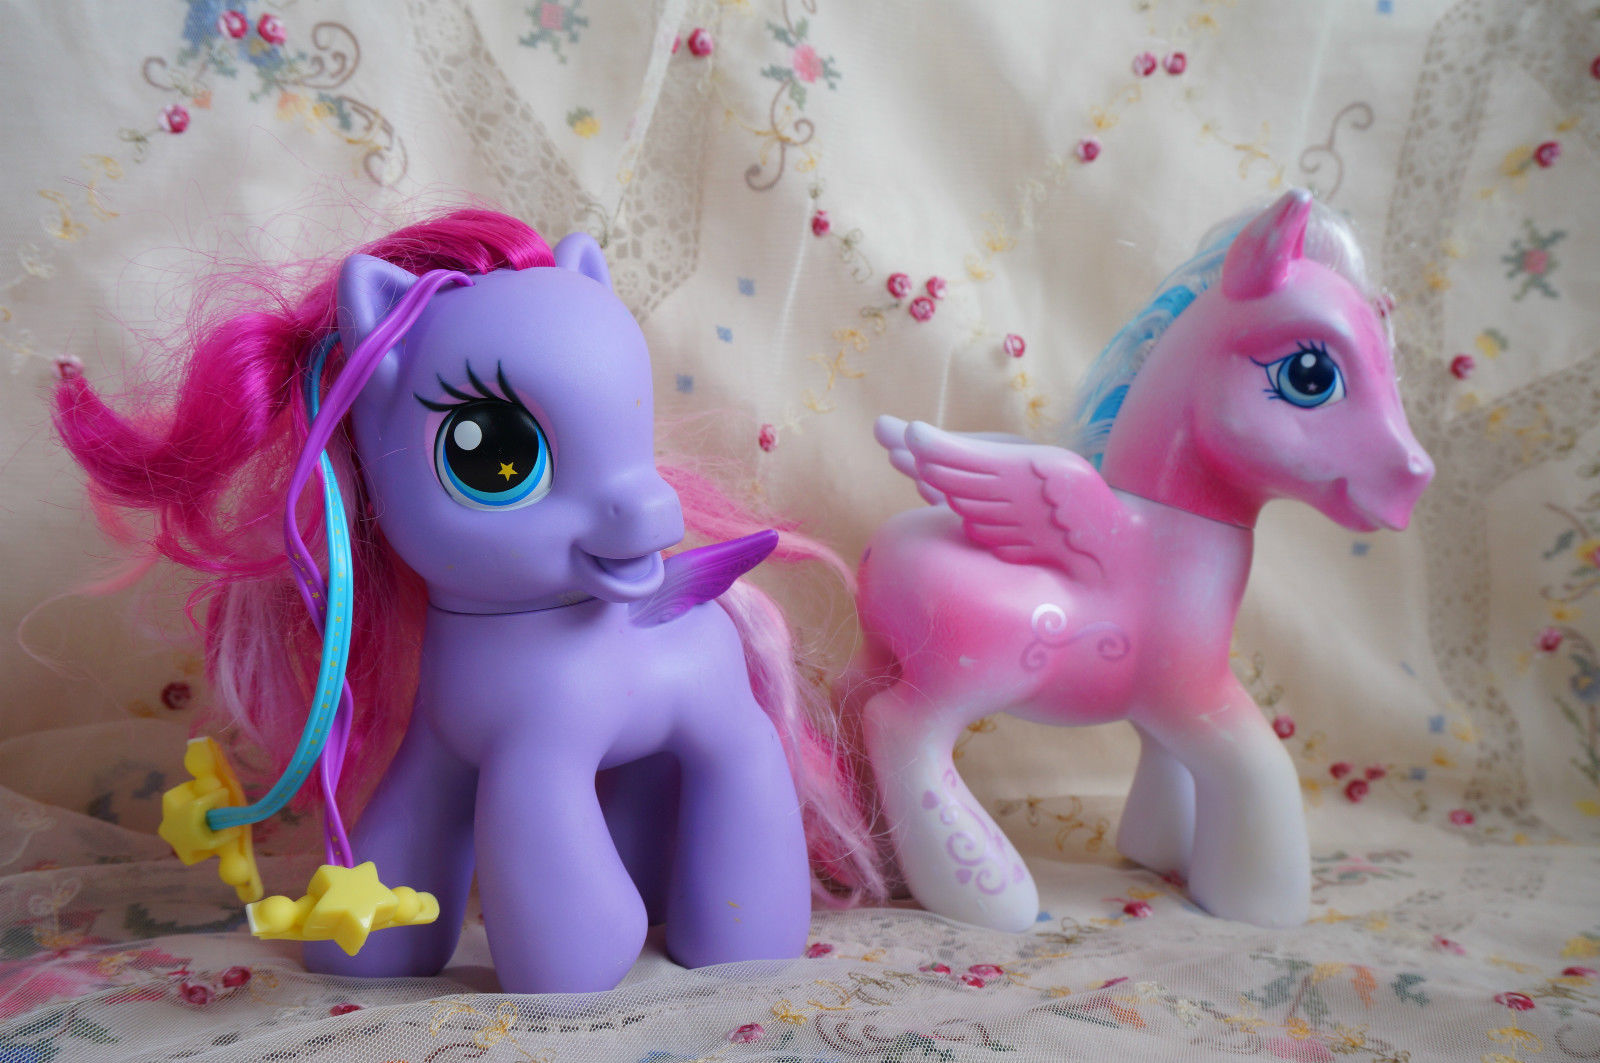 lot two large my little pony mlp horse figures Star catcher & star song G3 toys